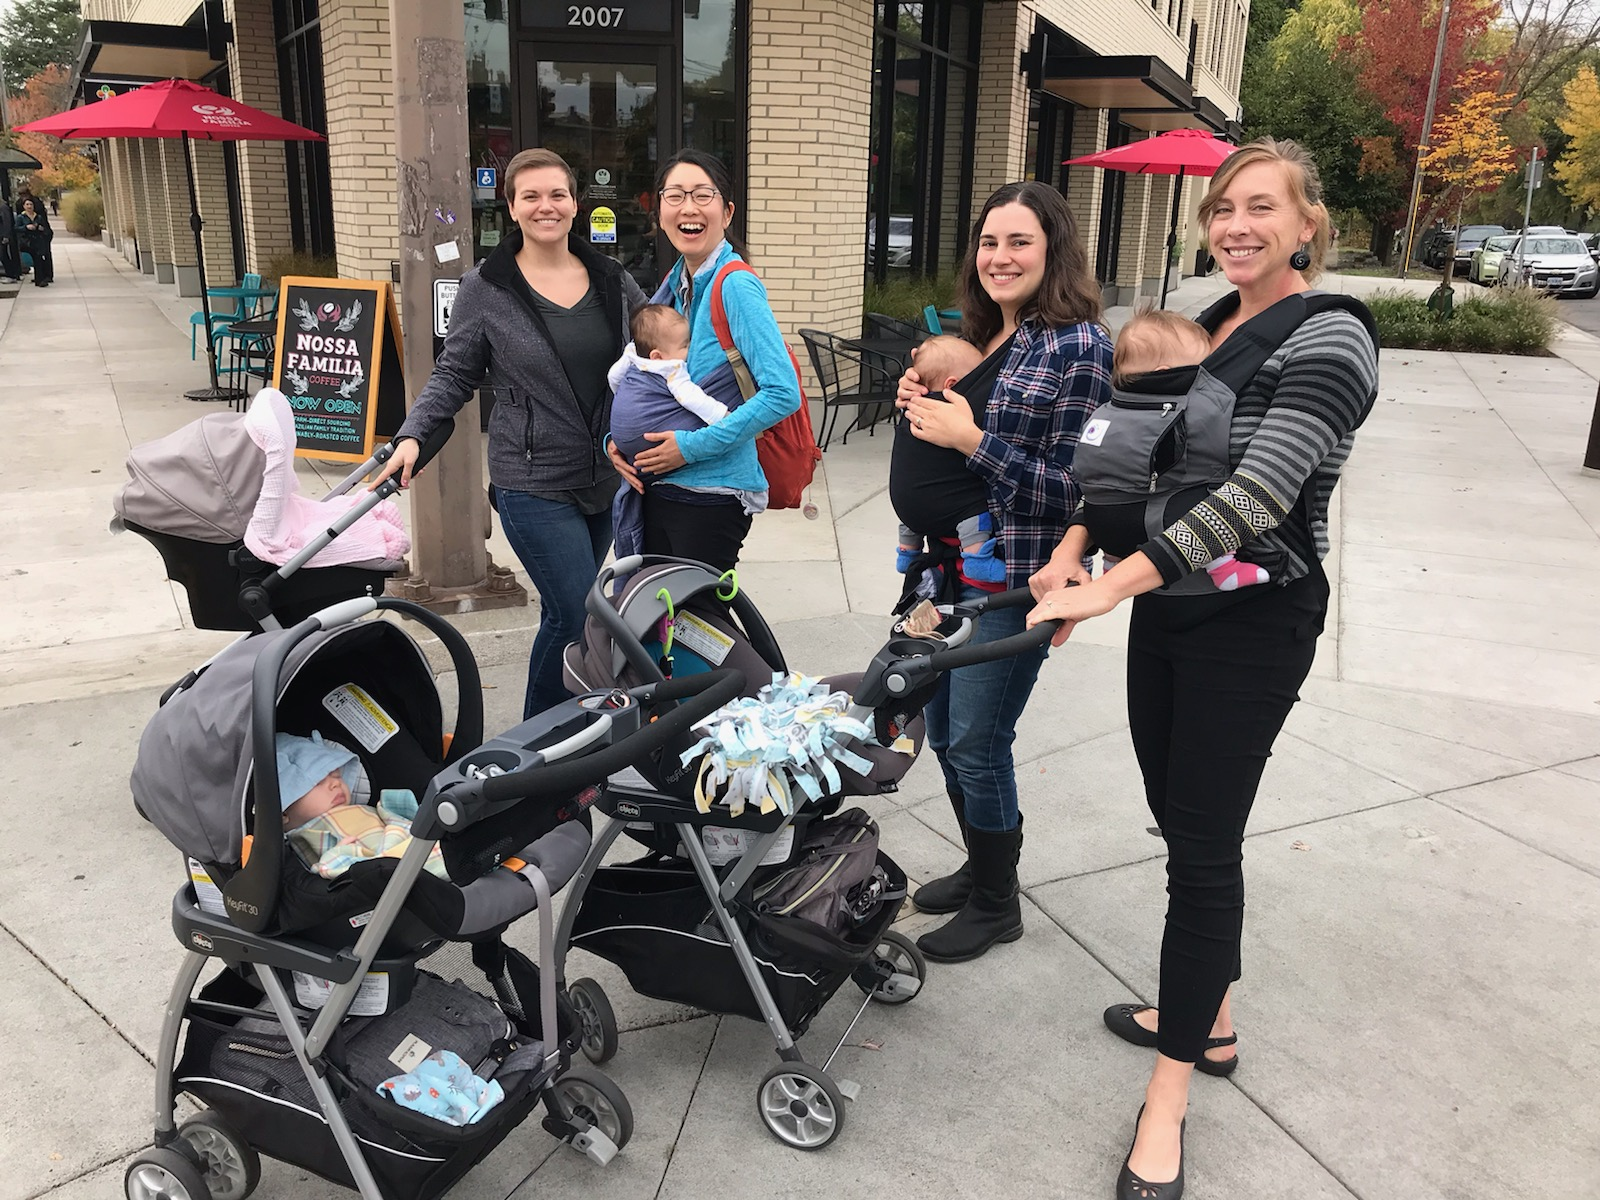 Four ladies with strollers and infants in front of a coffee shop